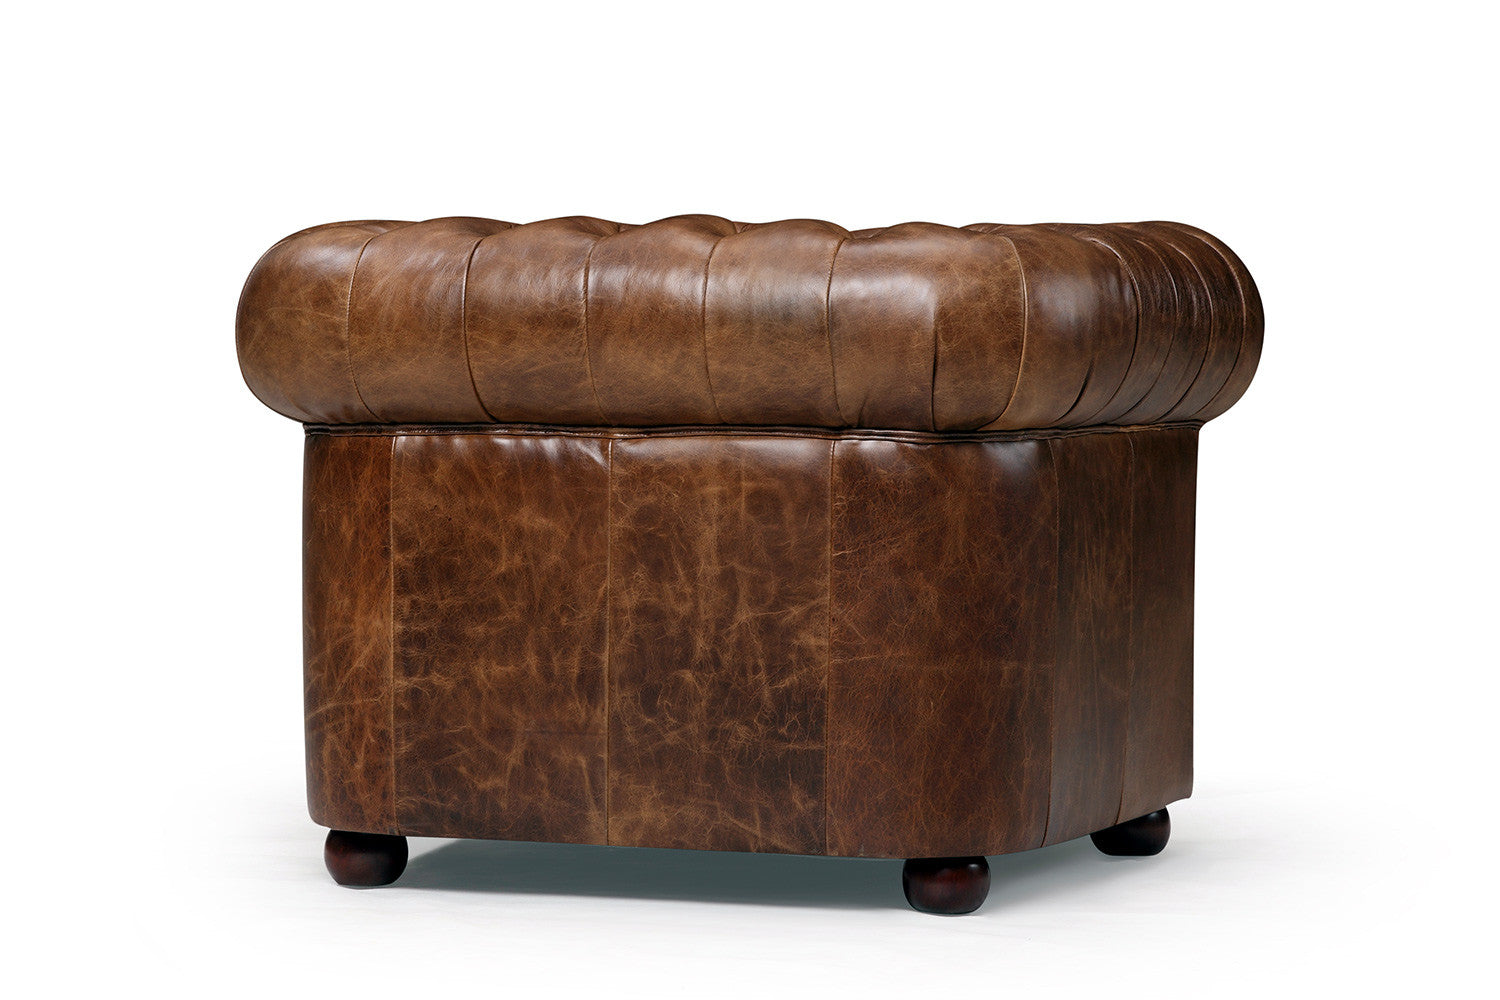 Captivating Back Of The Original Tufted Leather Chair